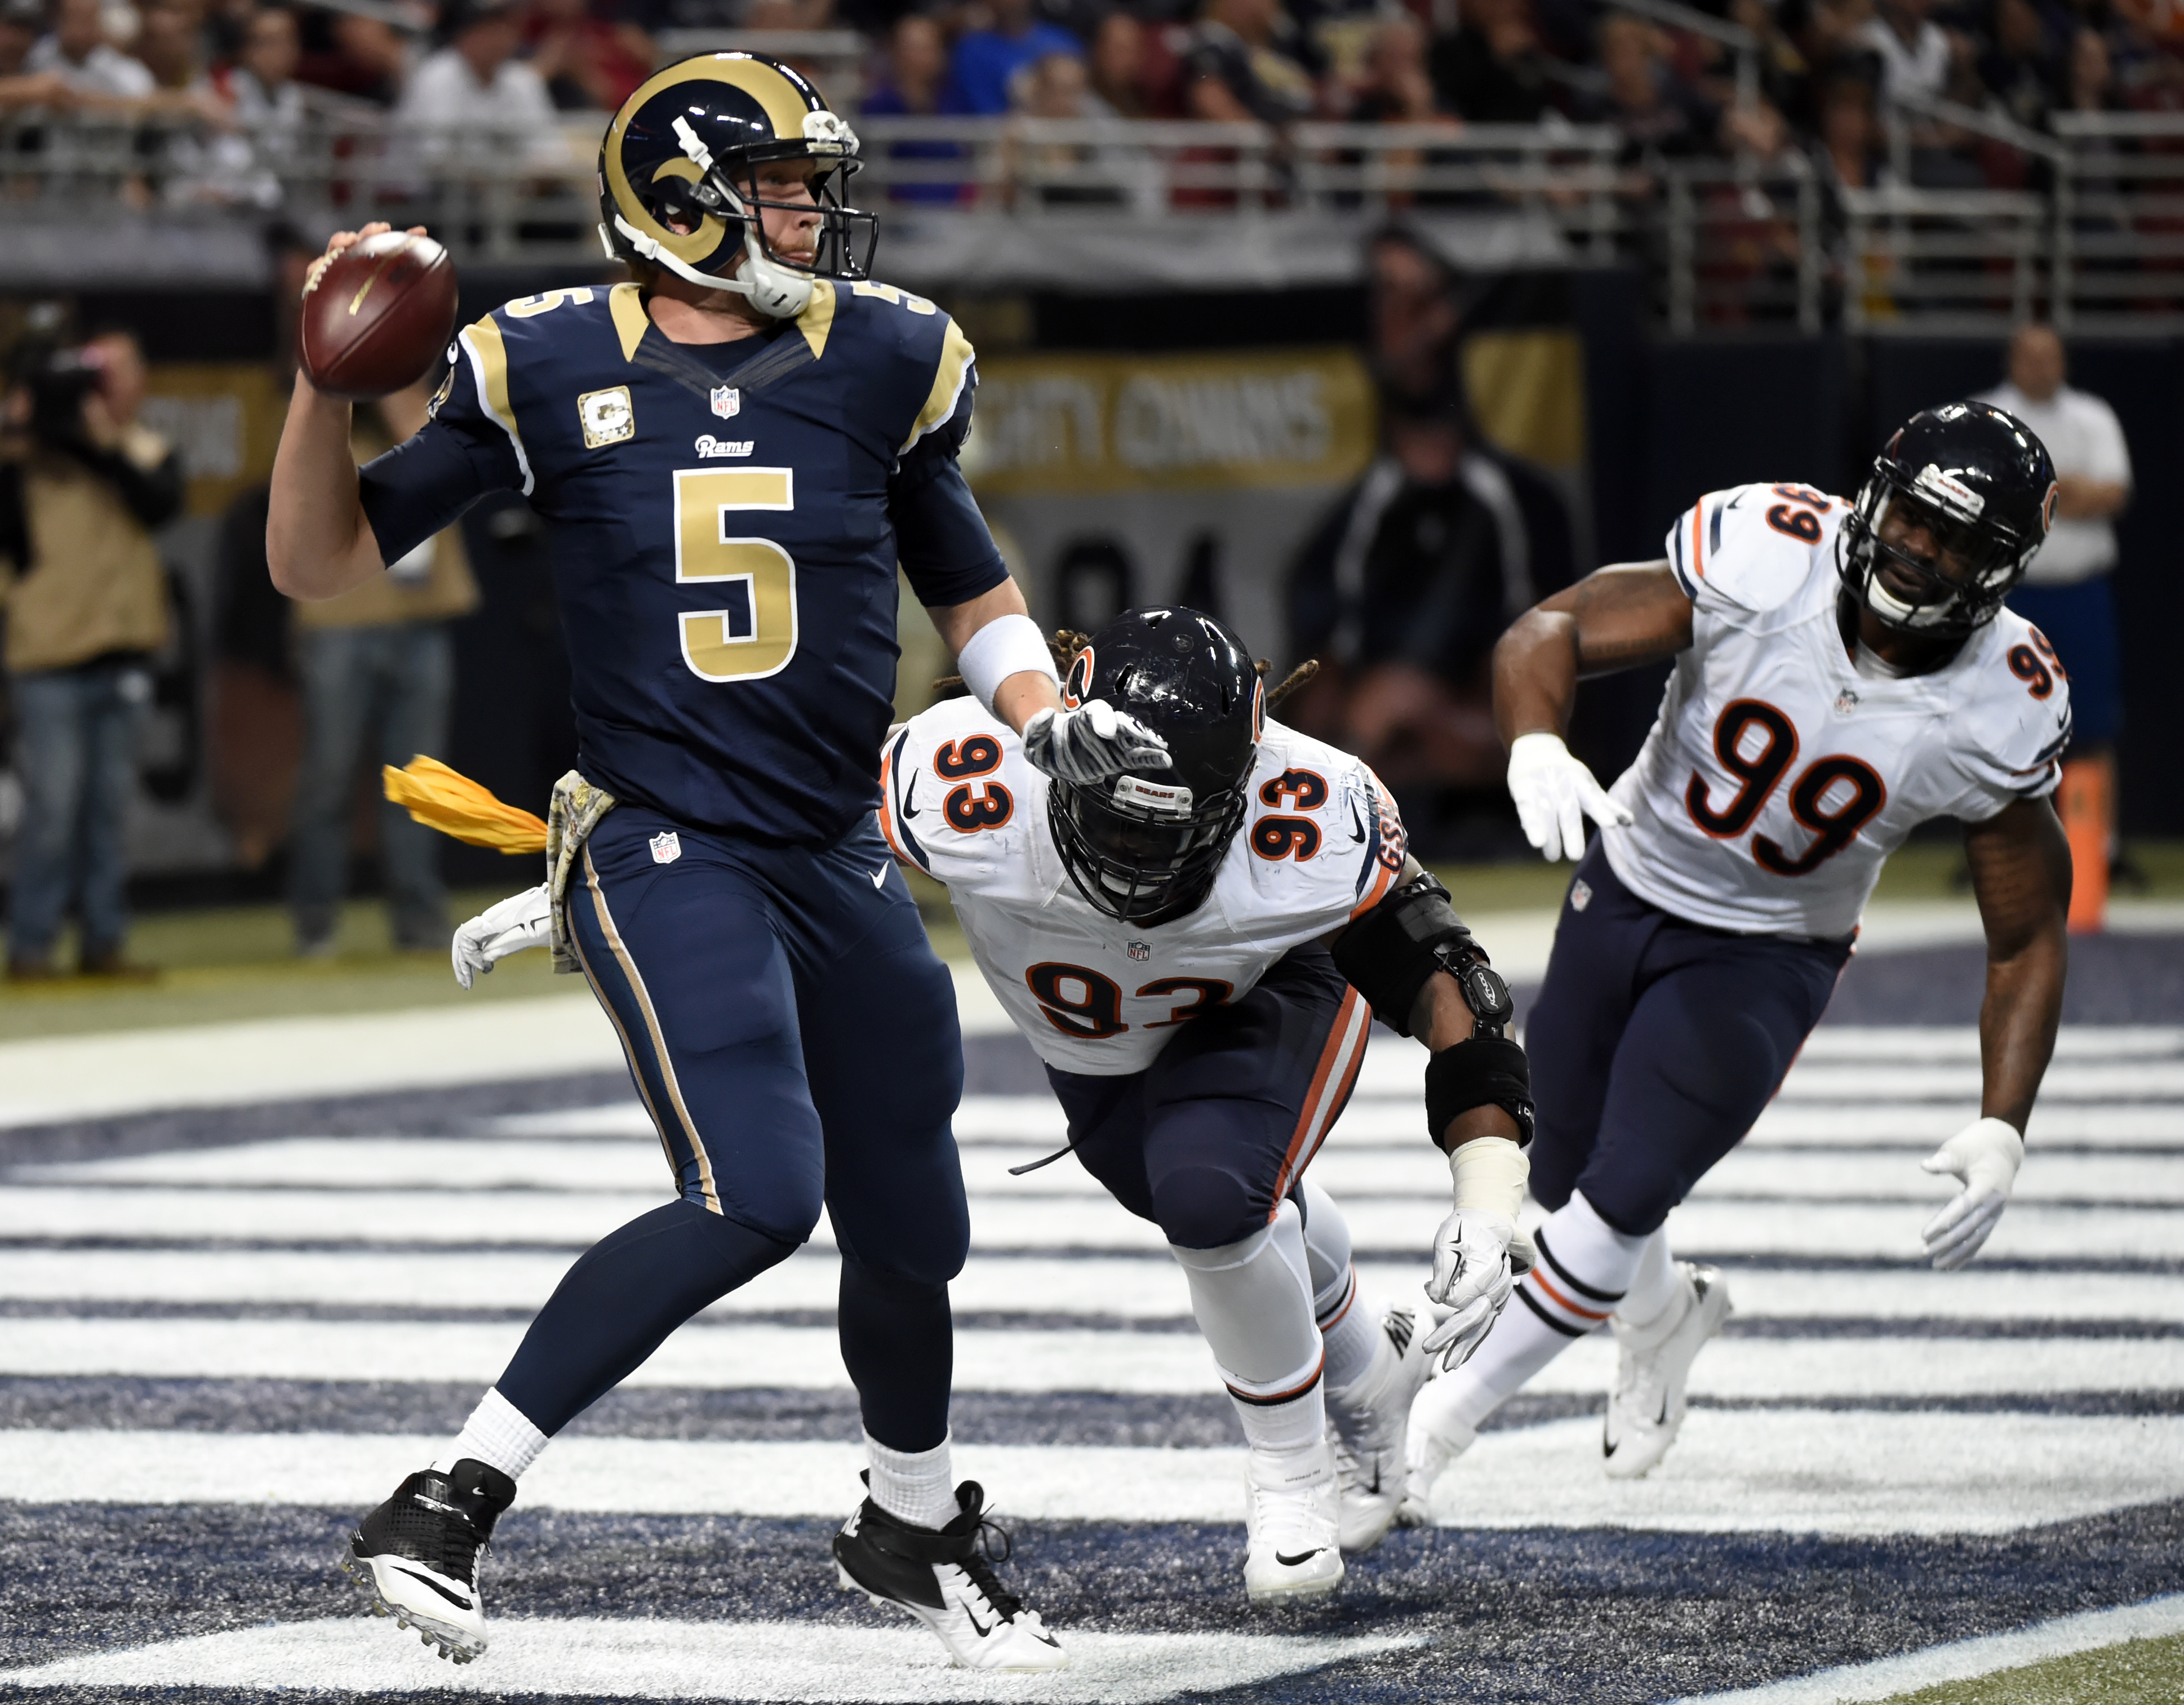 St. Louis Rams quarterback Nick Foles, left, scrambles away from Chicago Bears defenders Will Sutton (93) and Lamarr Houston (99) during the second quarter of an NFL football game Sunday, Nov. 15, 2015, in St. Louis. (AP Photo/L.G. Patterson)